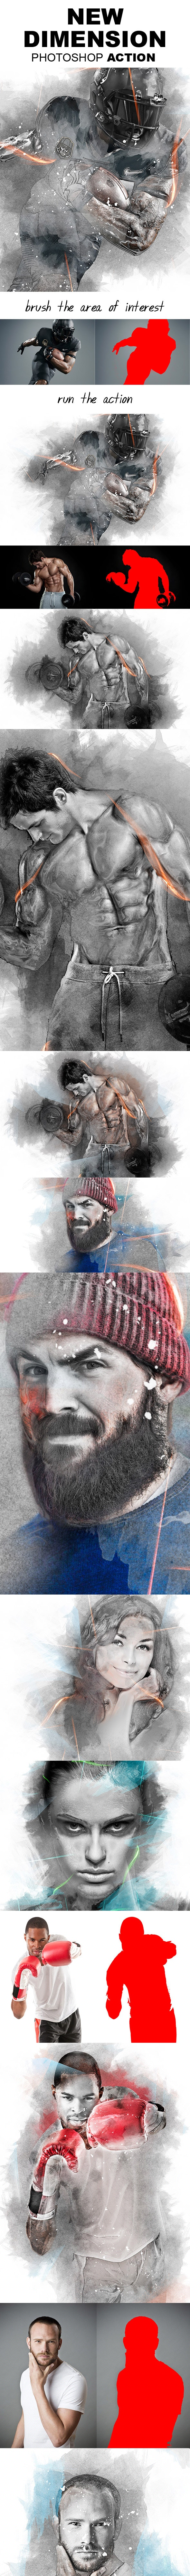 New Dimension Photoshop Action - Photo Effects Actions